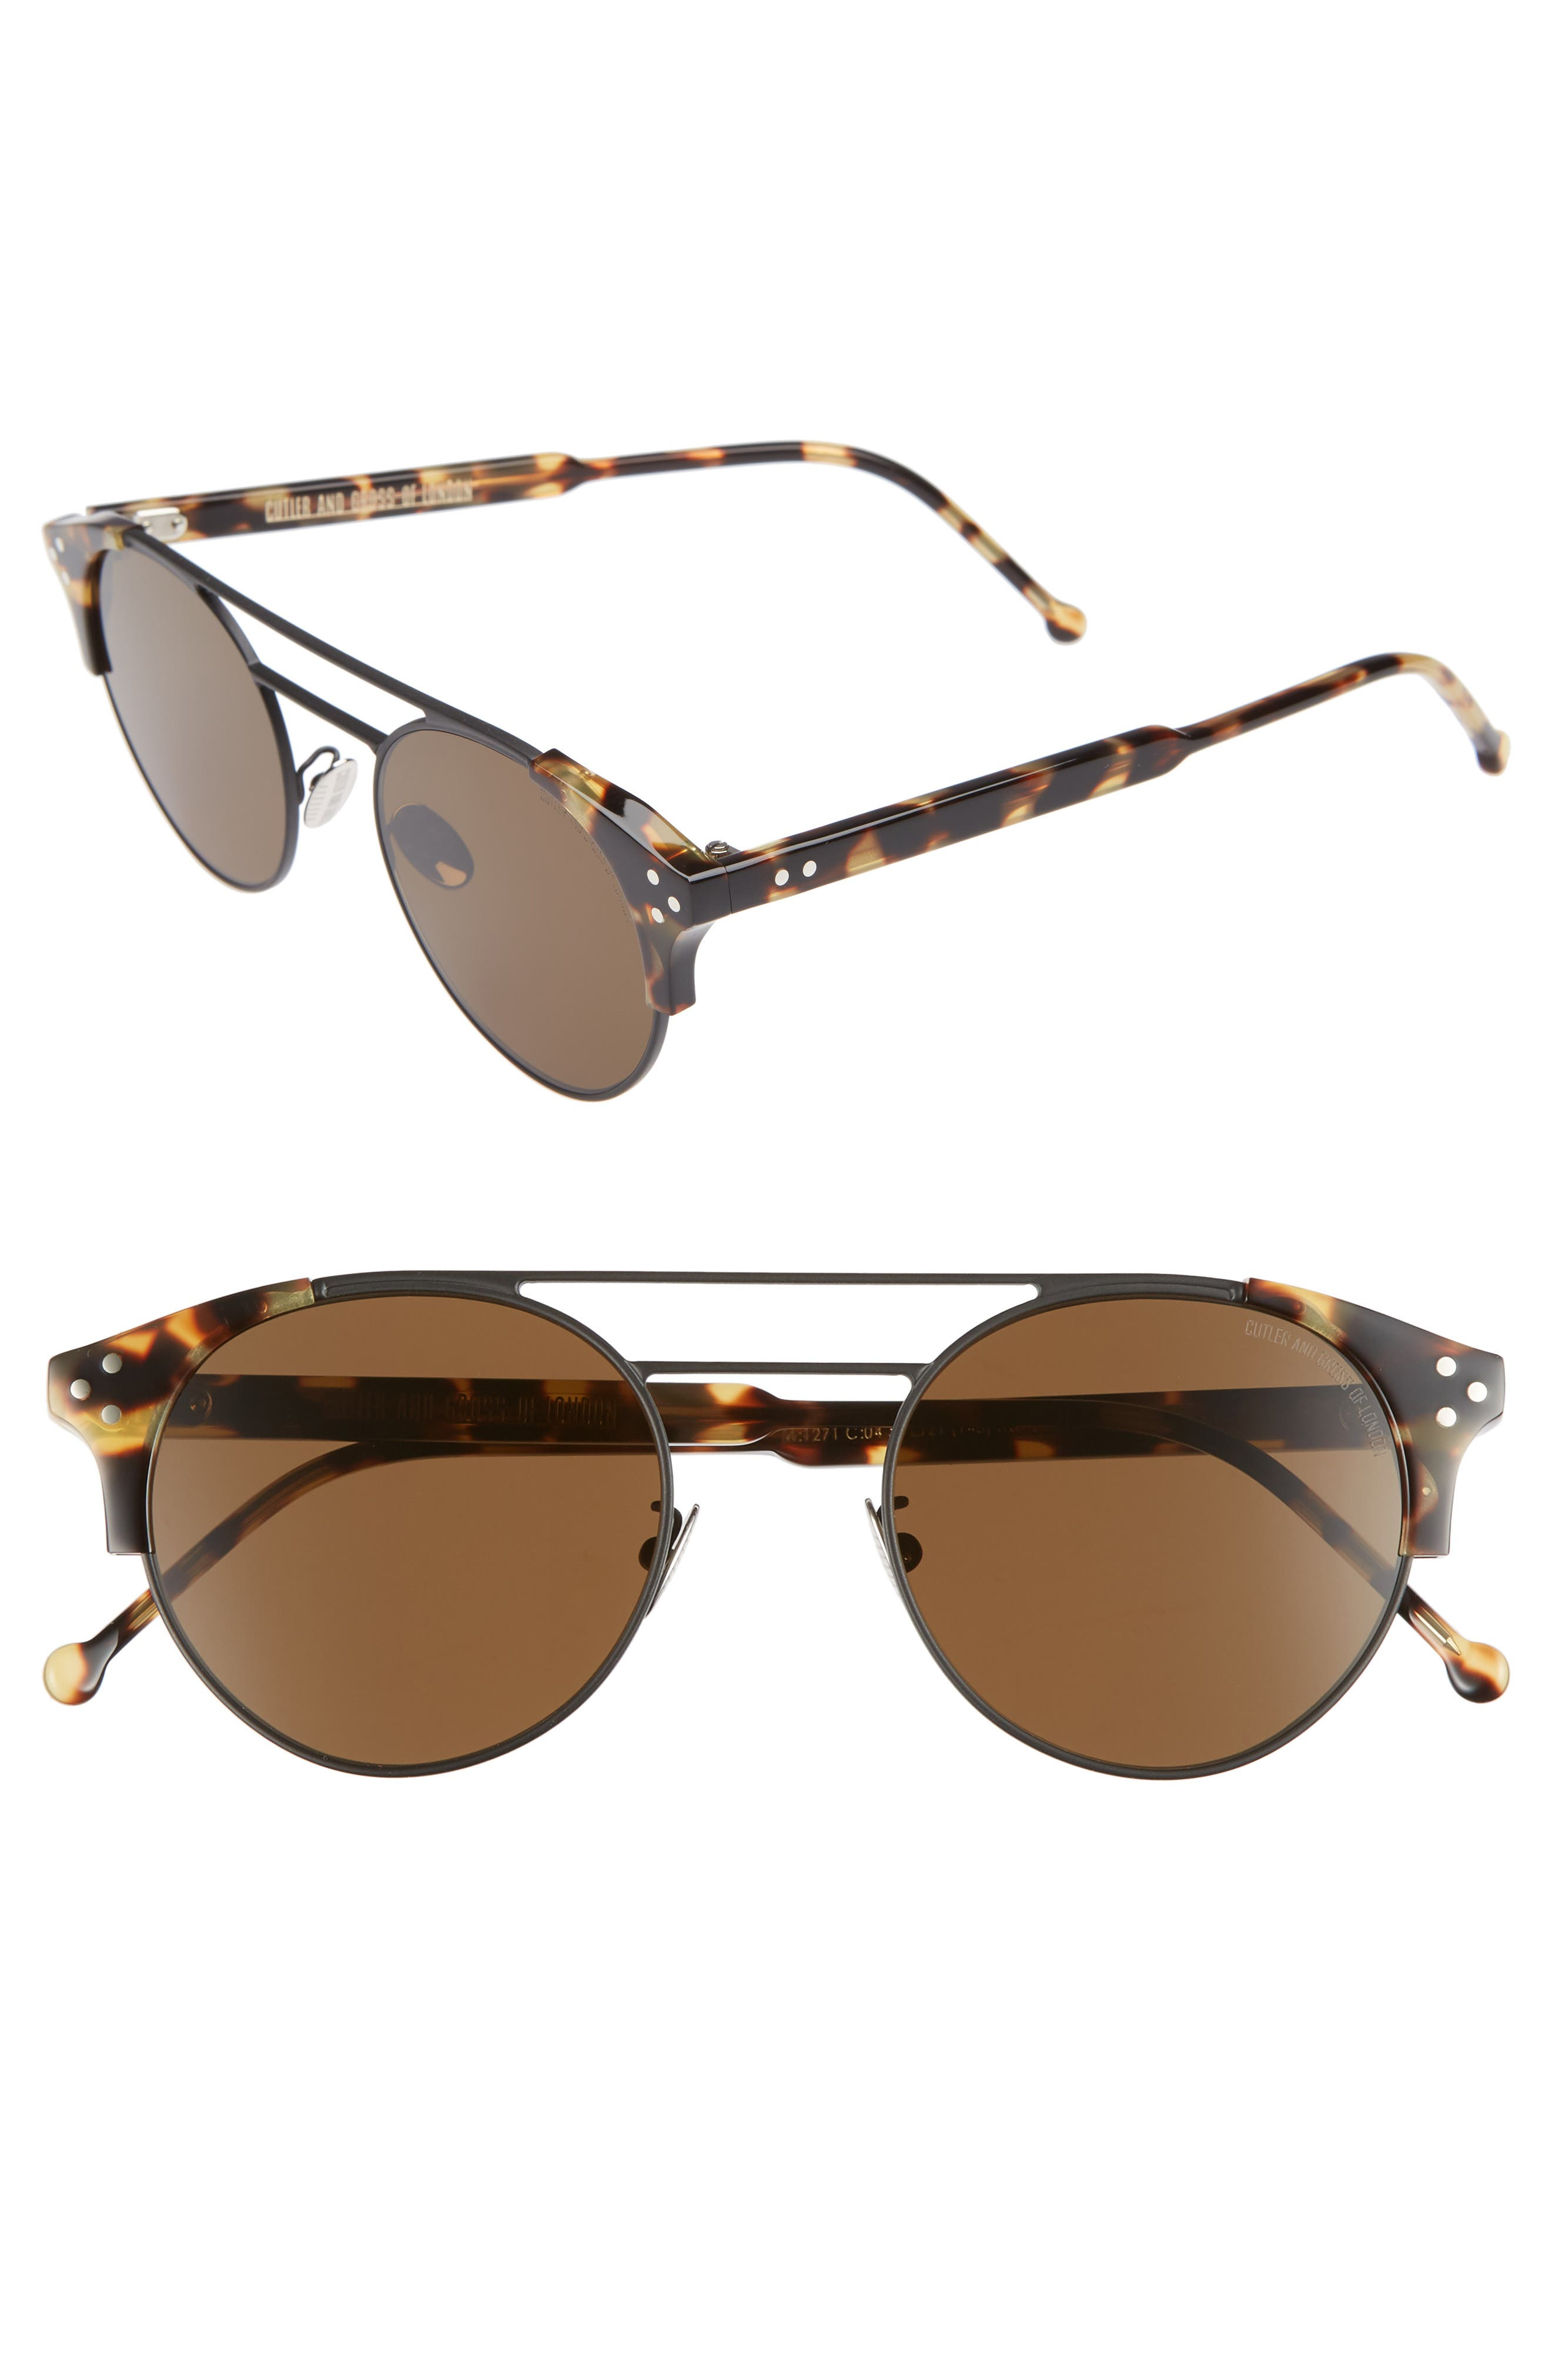 CUTLER AND GROSS 50MM POLARIZED ROUND SUNGLASSES - BLACK AND CAMOUFLAGE/ BROWN